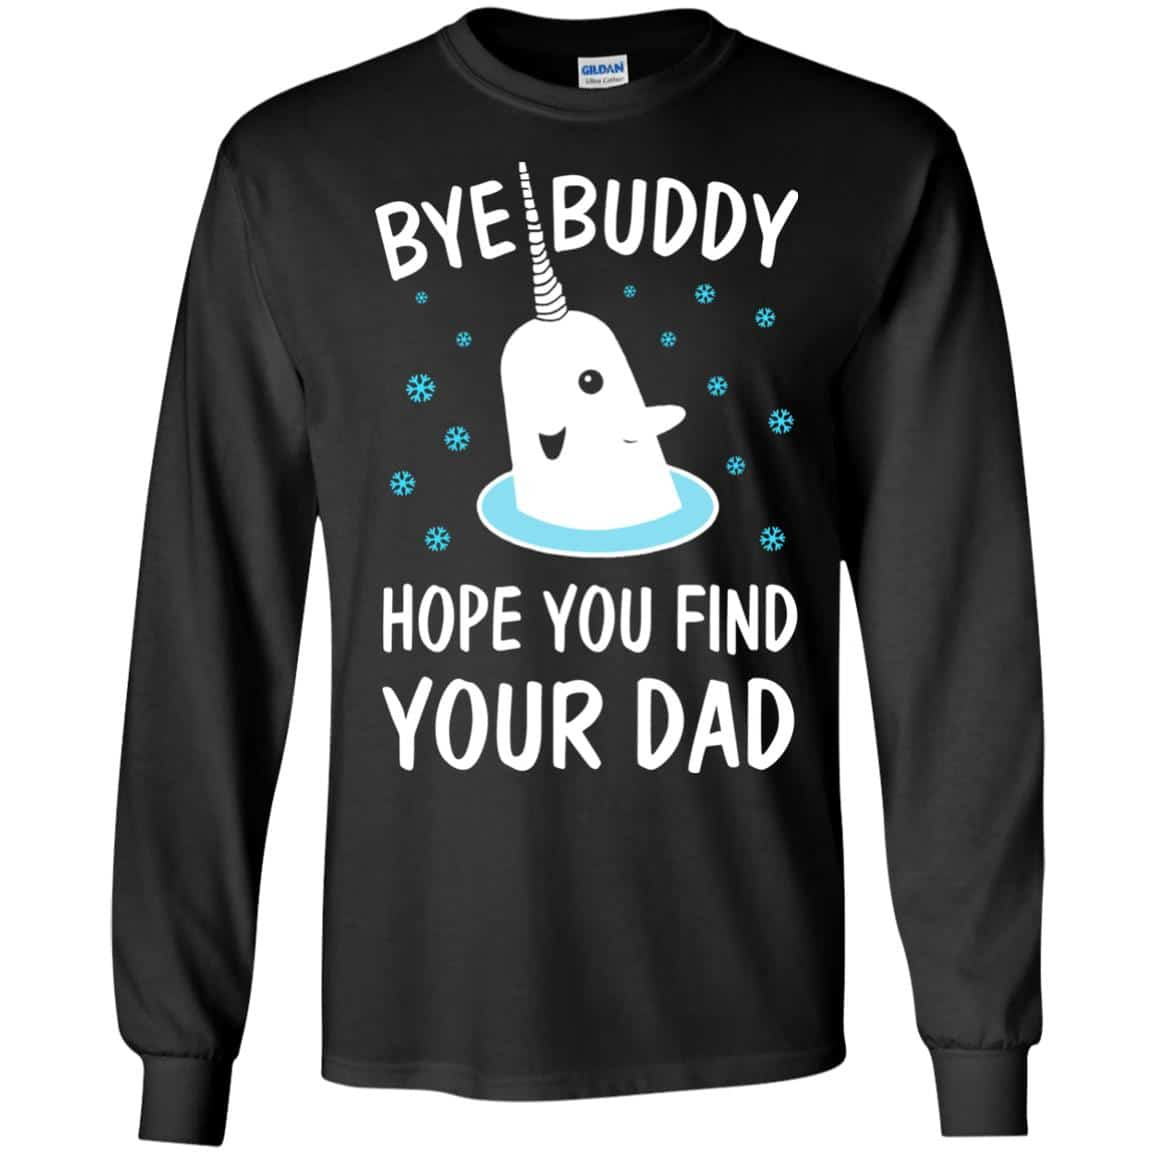 Bye Buddy: hope you find your dad sweater, long sleeve ...